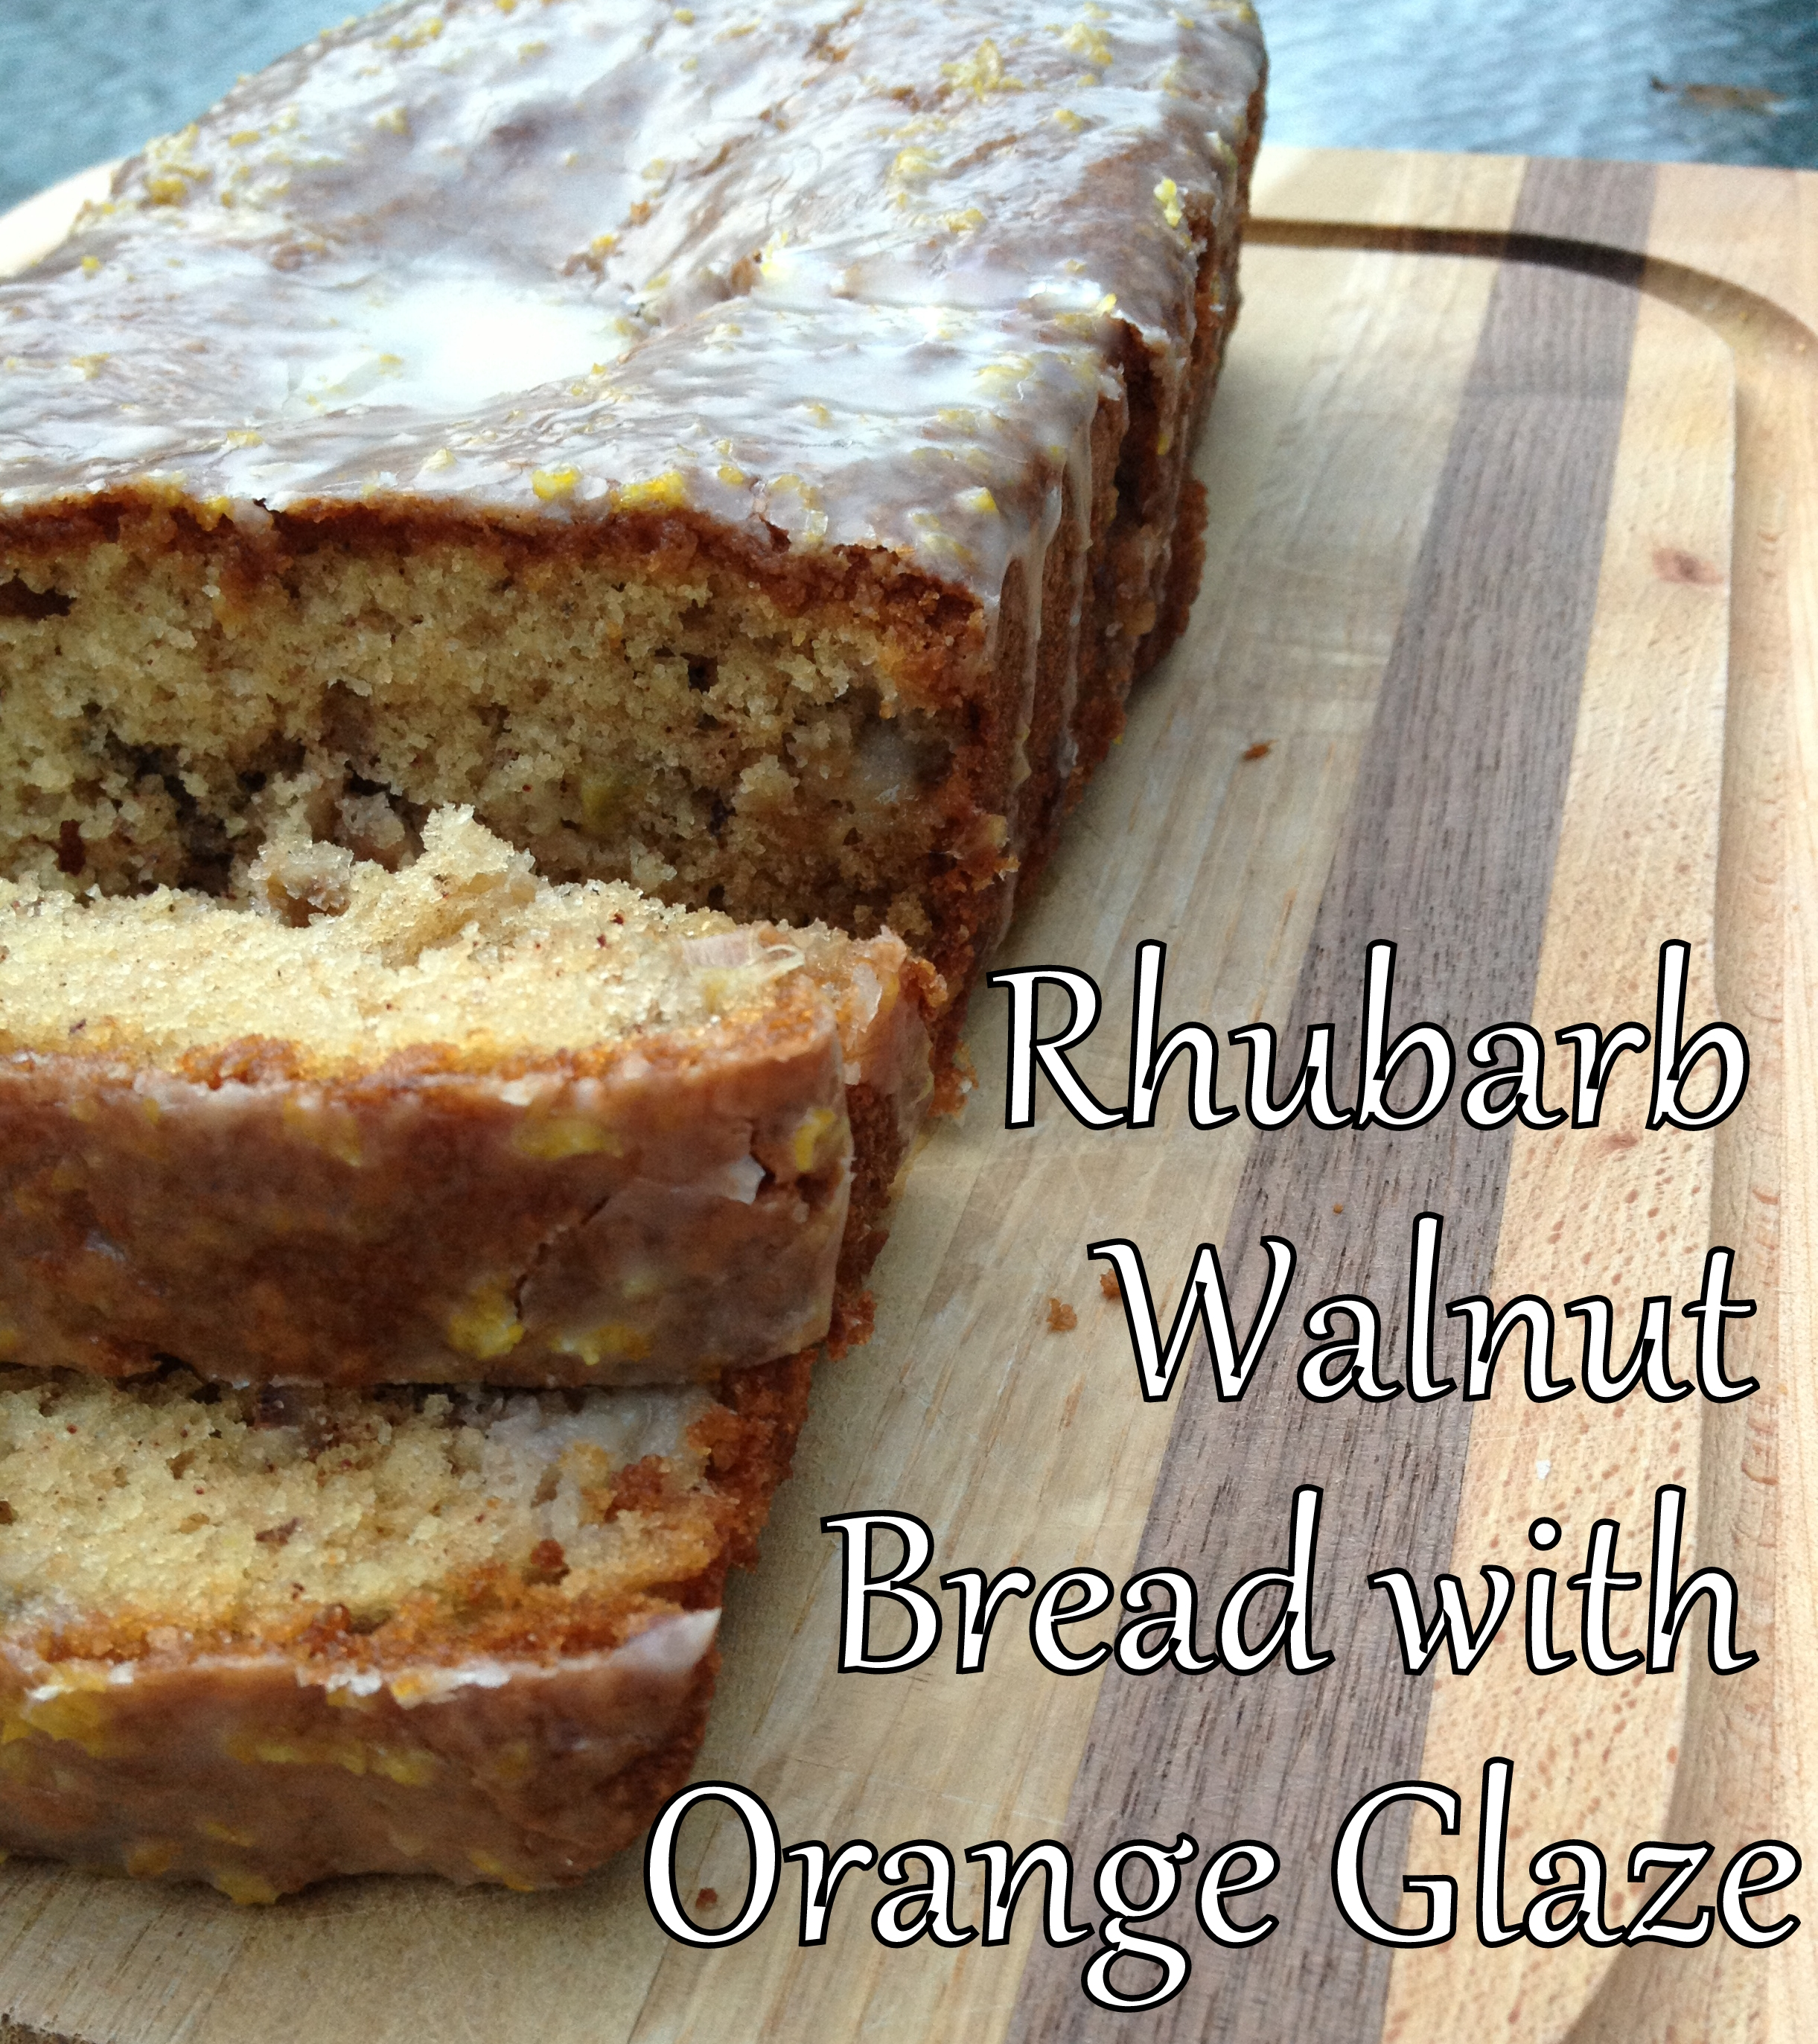 Rhubarb Walnut Bread with Orange Glaze | The Sassy Swan